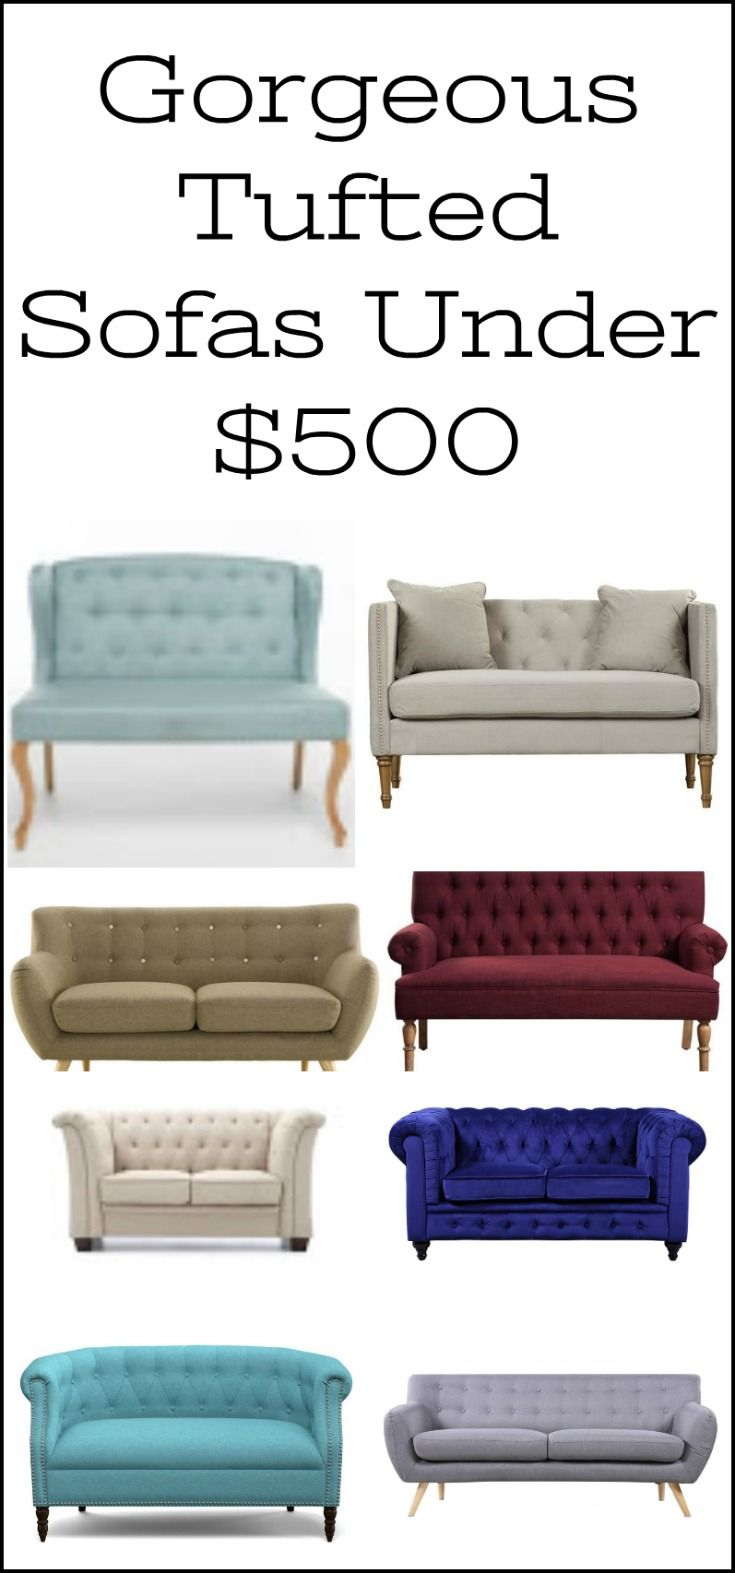 Gorgeous Affordable Sofas Tufted Sofas Settees Loveseats